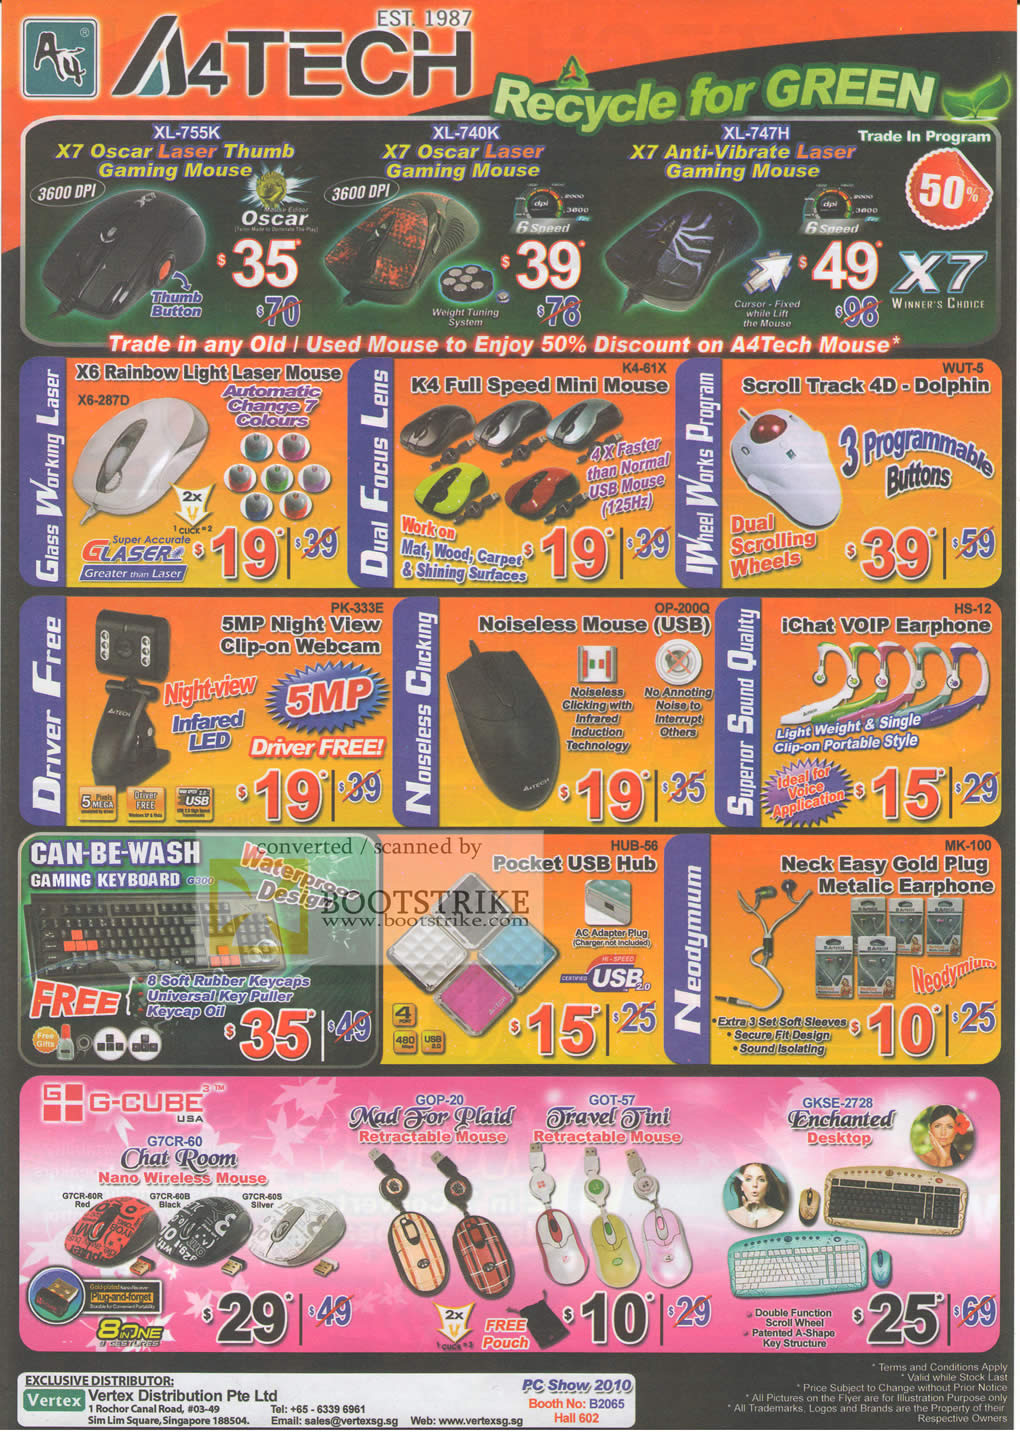 PC Show 2010 price list image brochure of Vertex A4Tech Gaming Mouse X7 Oscar Laser Anti Vibrate Rainbow Dolphin Webcam Noiseless IChat VOIP Keyboard